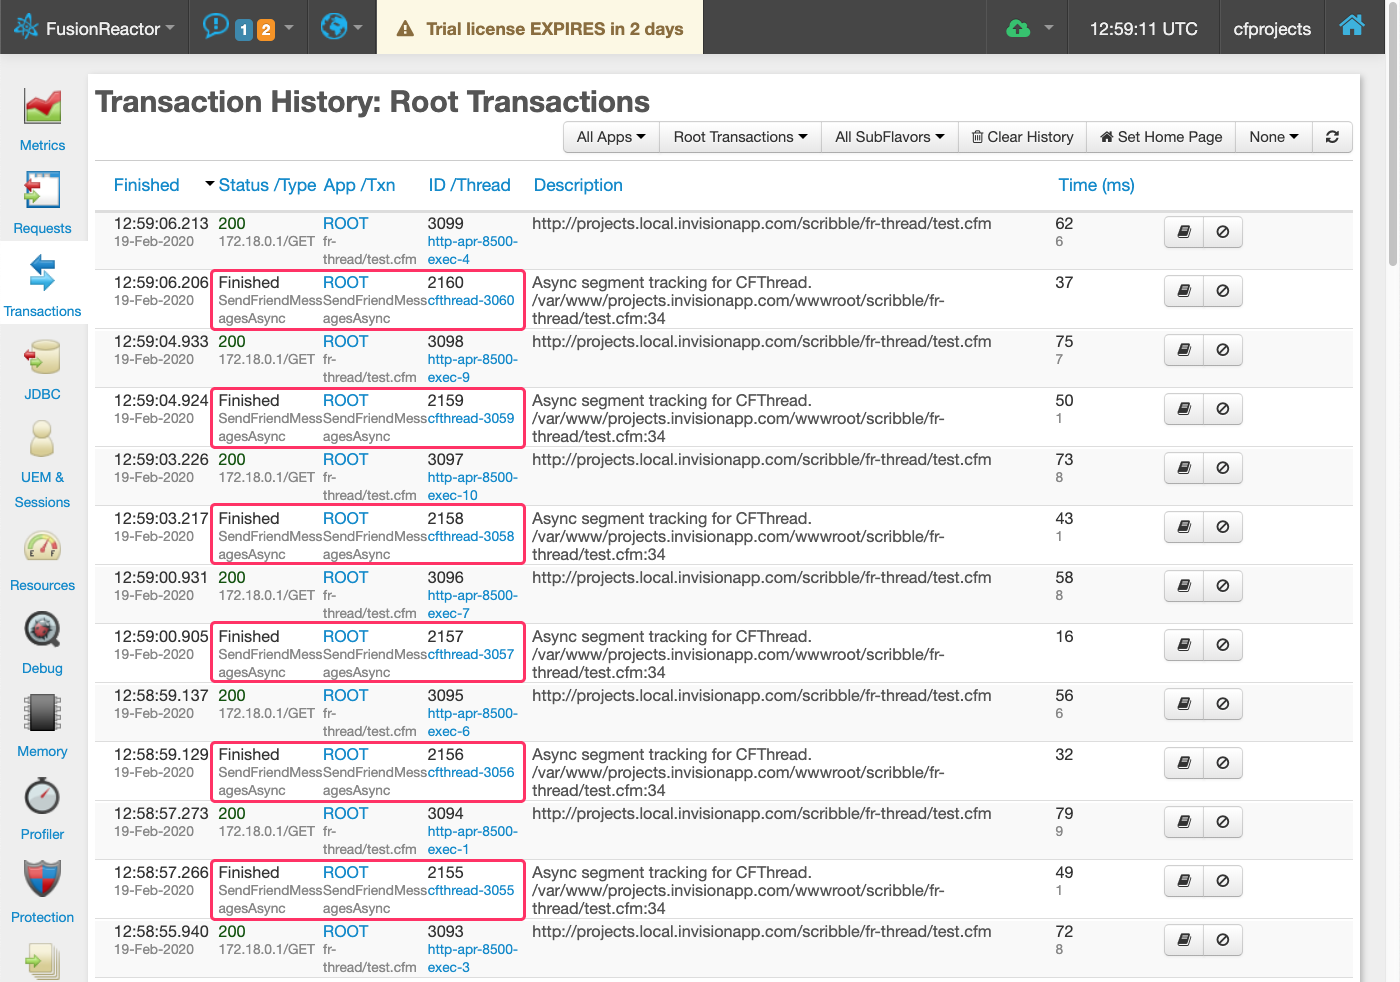 Instrumented CFThread's showing up in the Transactions list in FusionReactor Standalone dashboard.